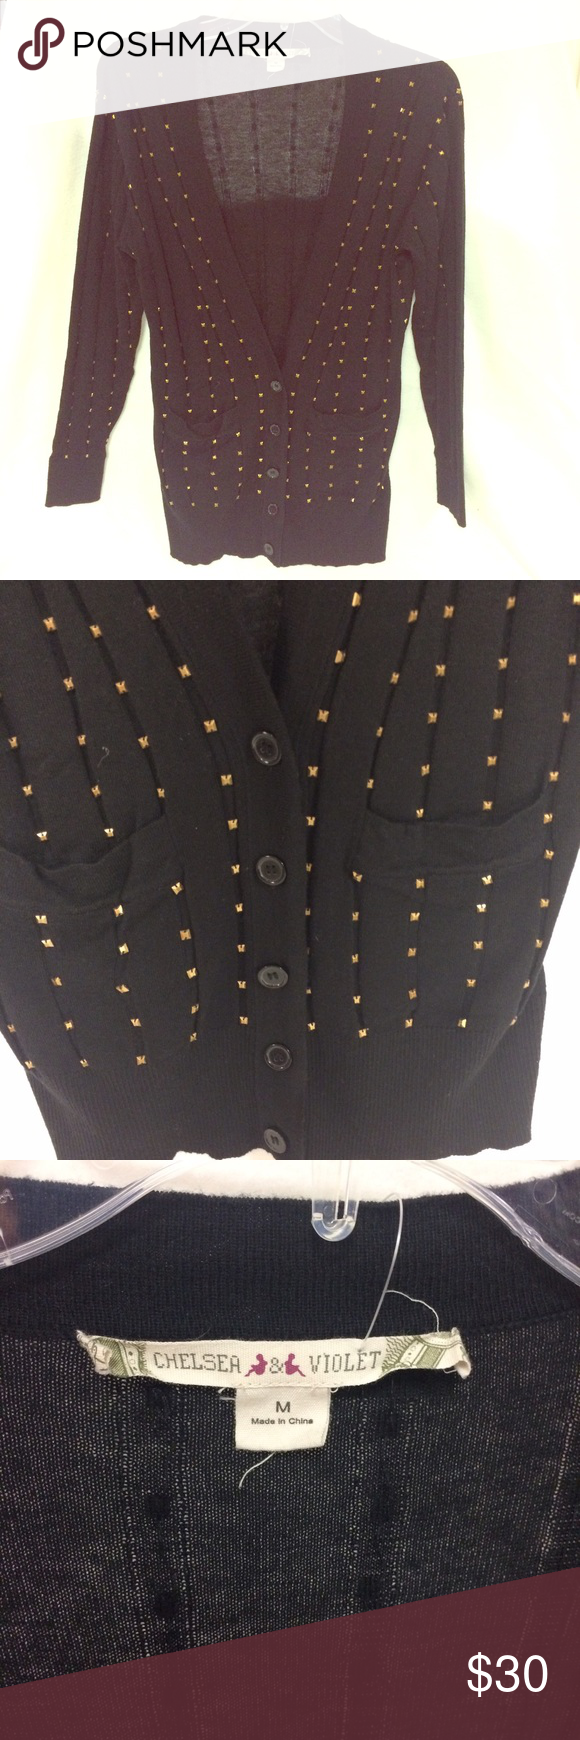 🎩Chelsea & Violet Cardigan Cute Chelsea & Violet Cardigan, black with gold sequin studs. Very soft, great condition! No signs of wear and no studs missing. Chelsea & Violet Sweaters Cardigans